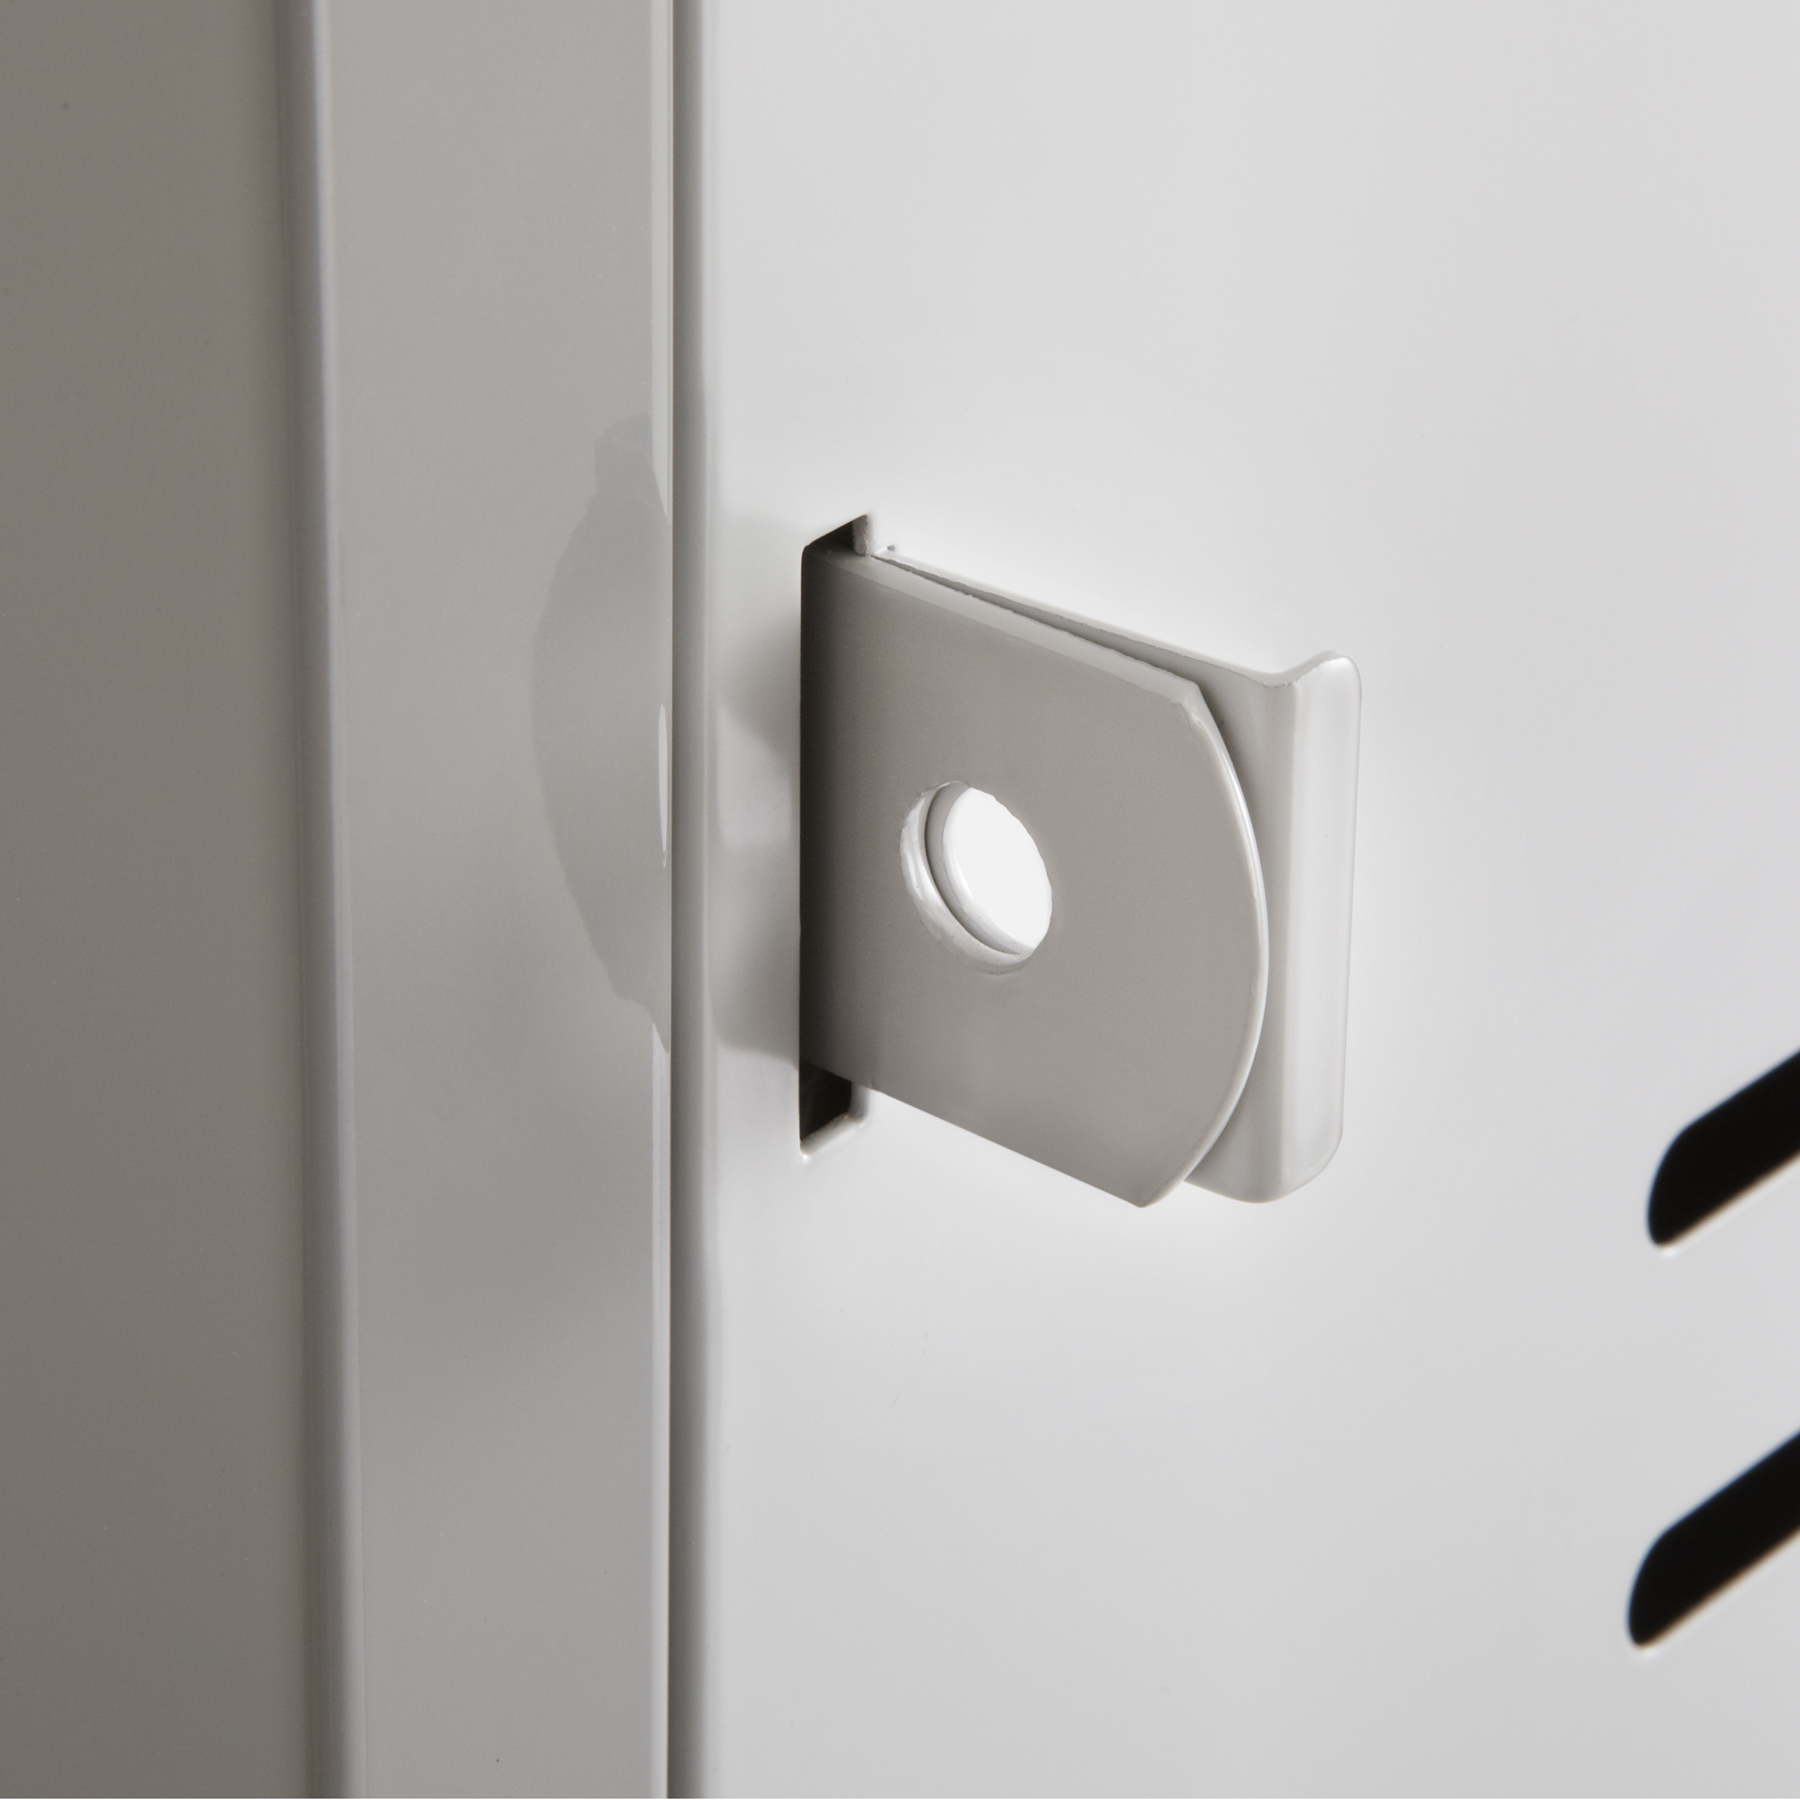 Box locker lock mechanism